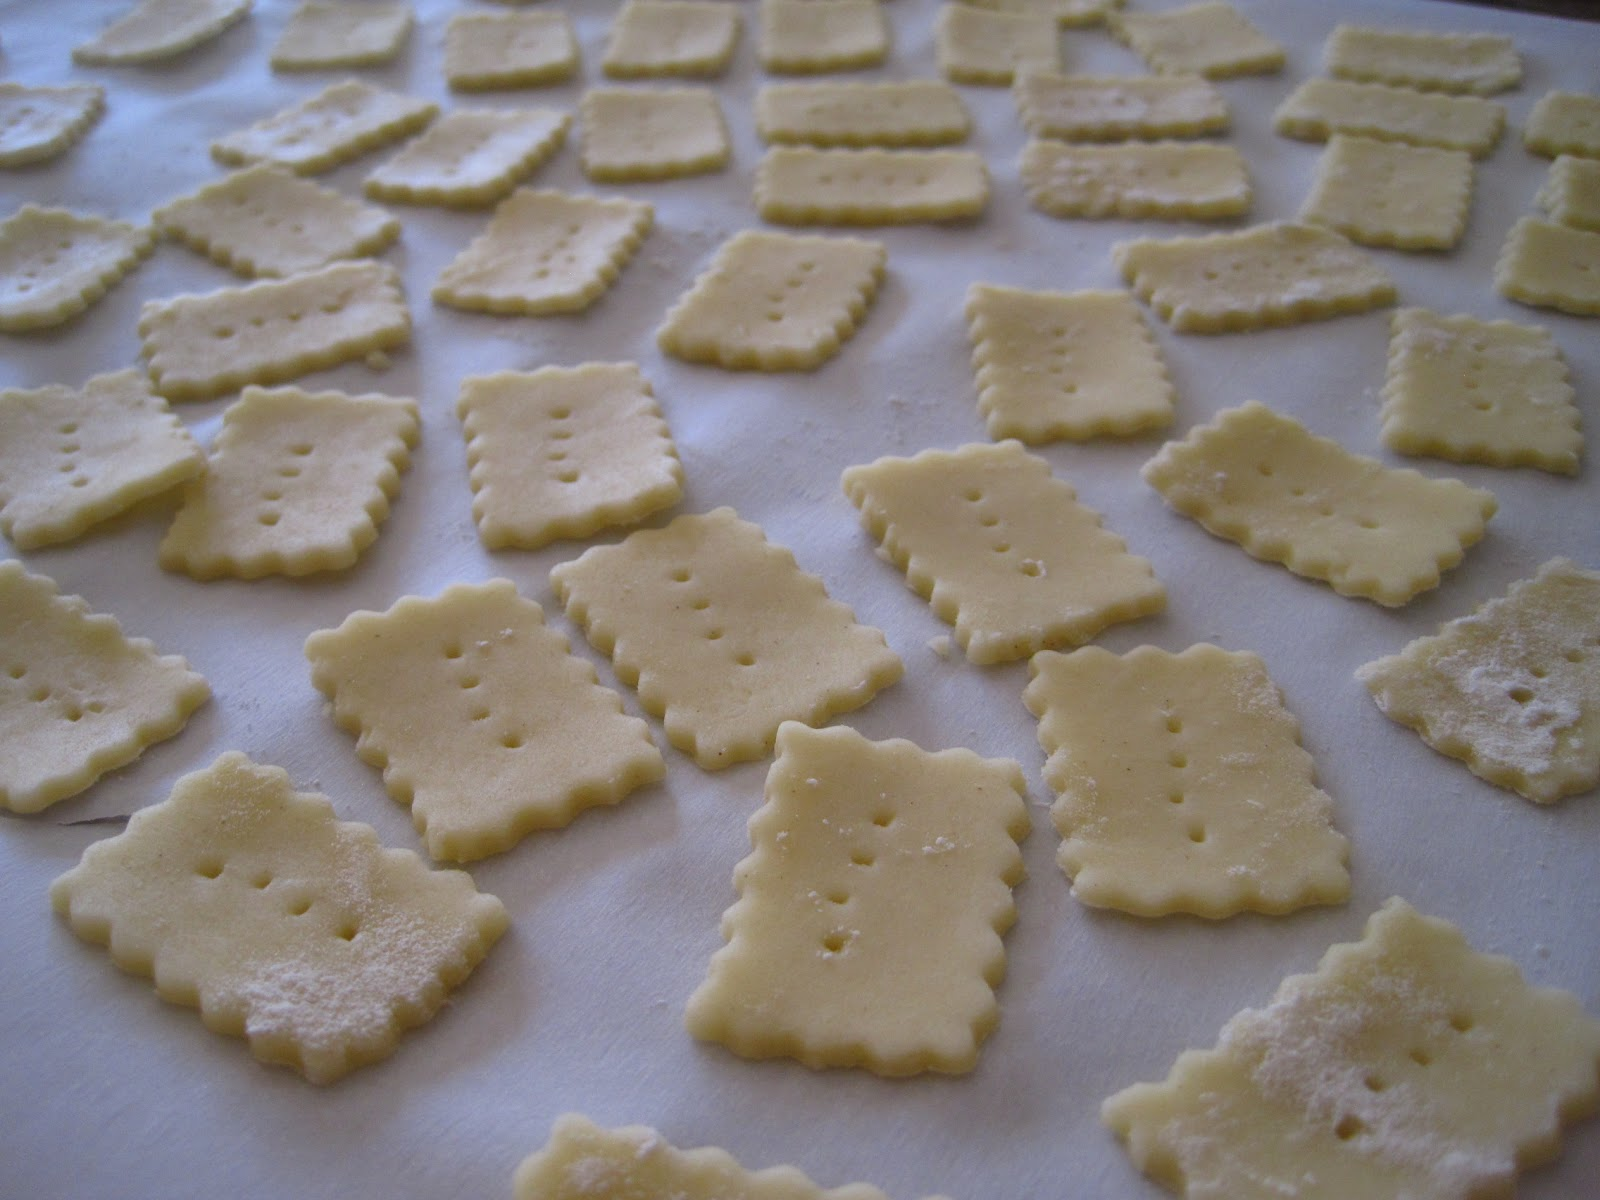 Alissamay's: Sharp Cheddar Cheese Crackers